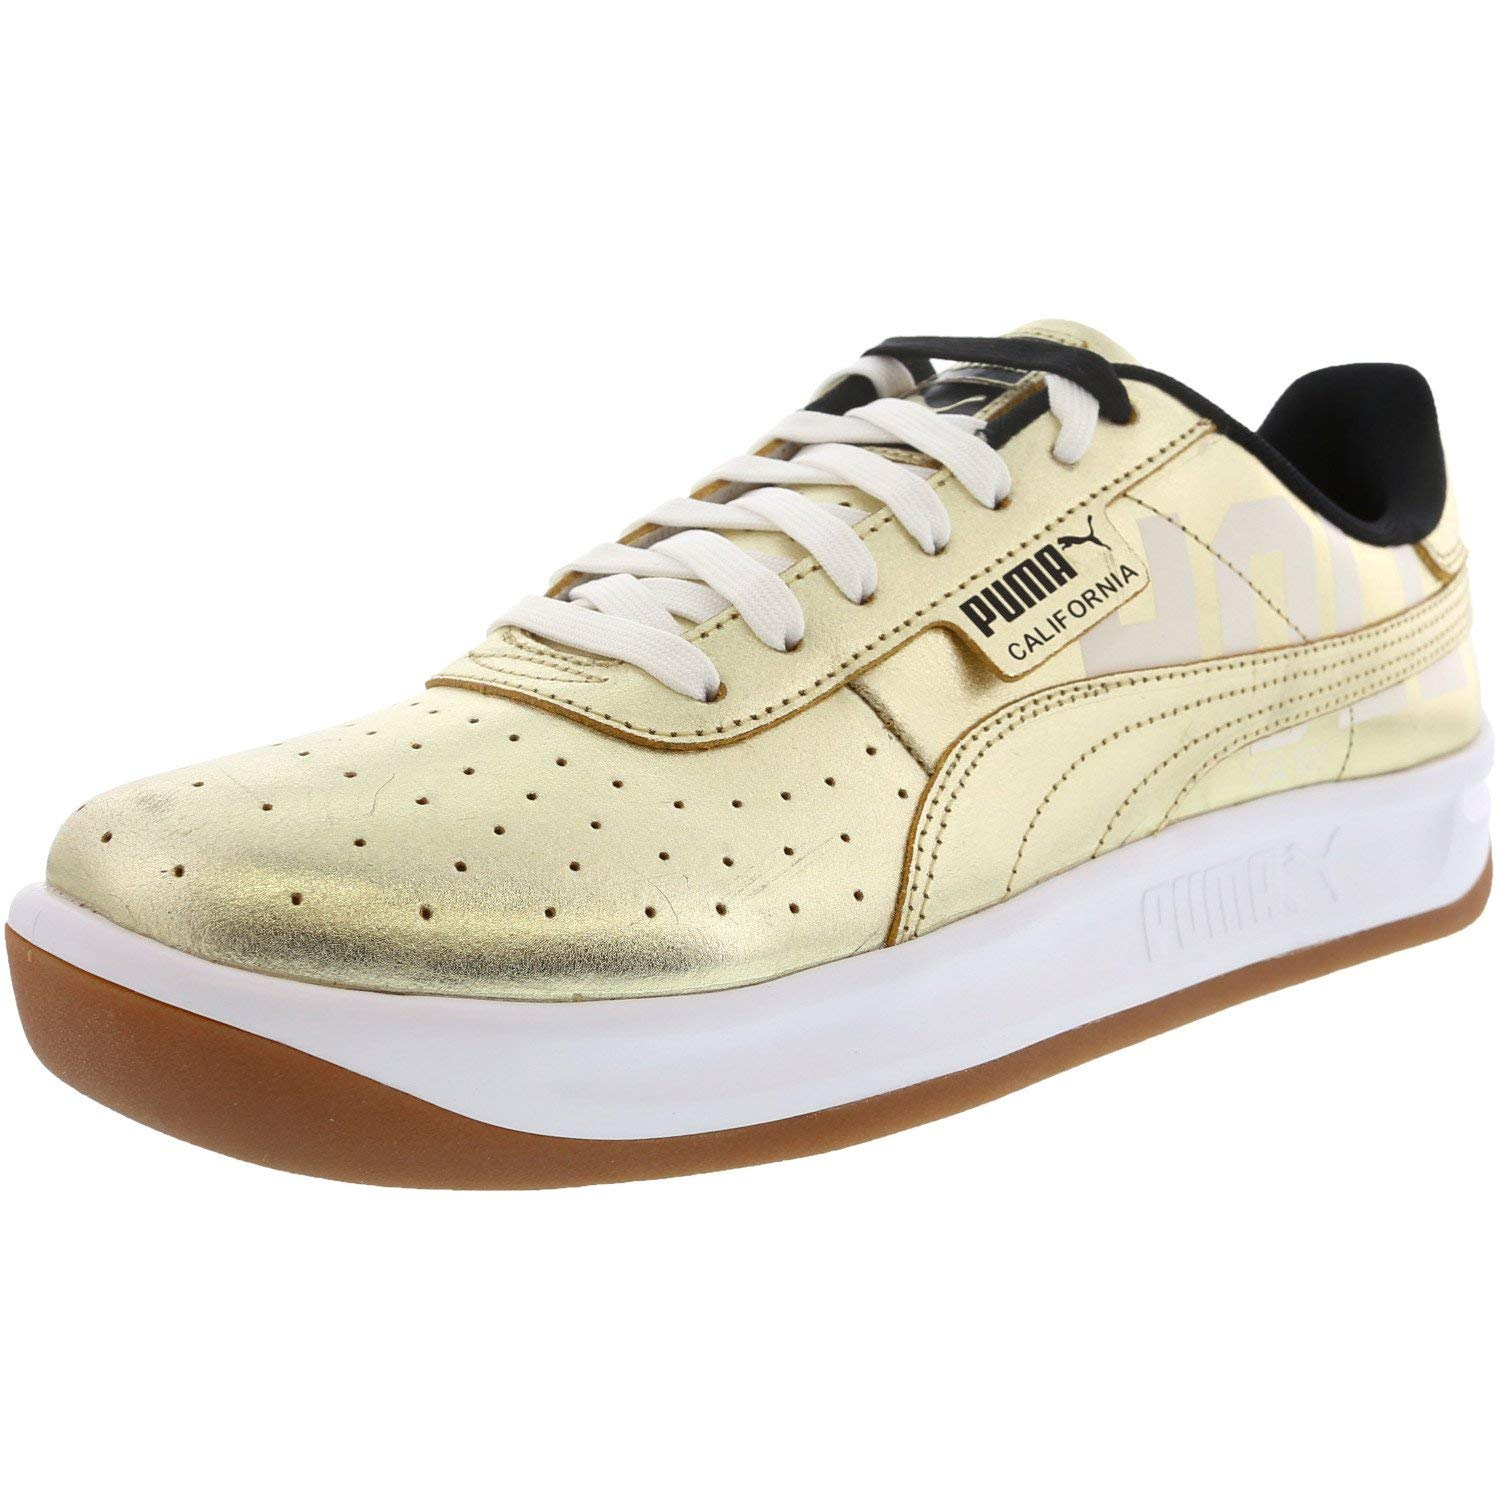 Puma Men's California Hollywood Team Gold/Black Ankle-High ...